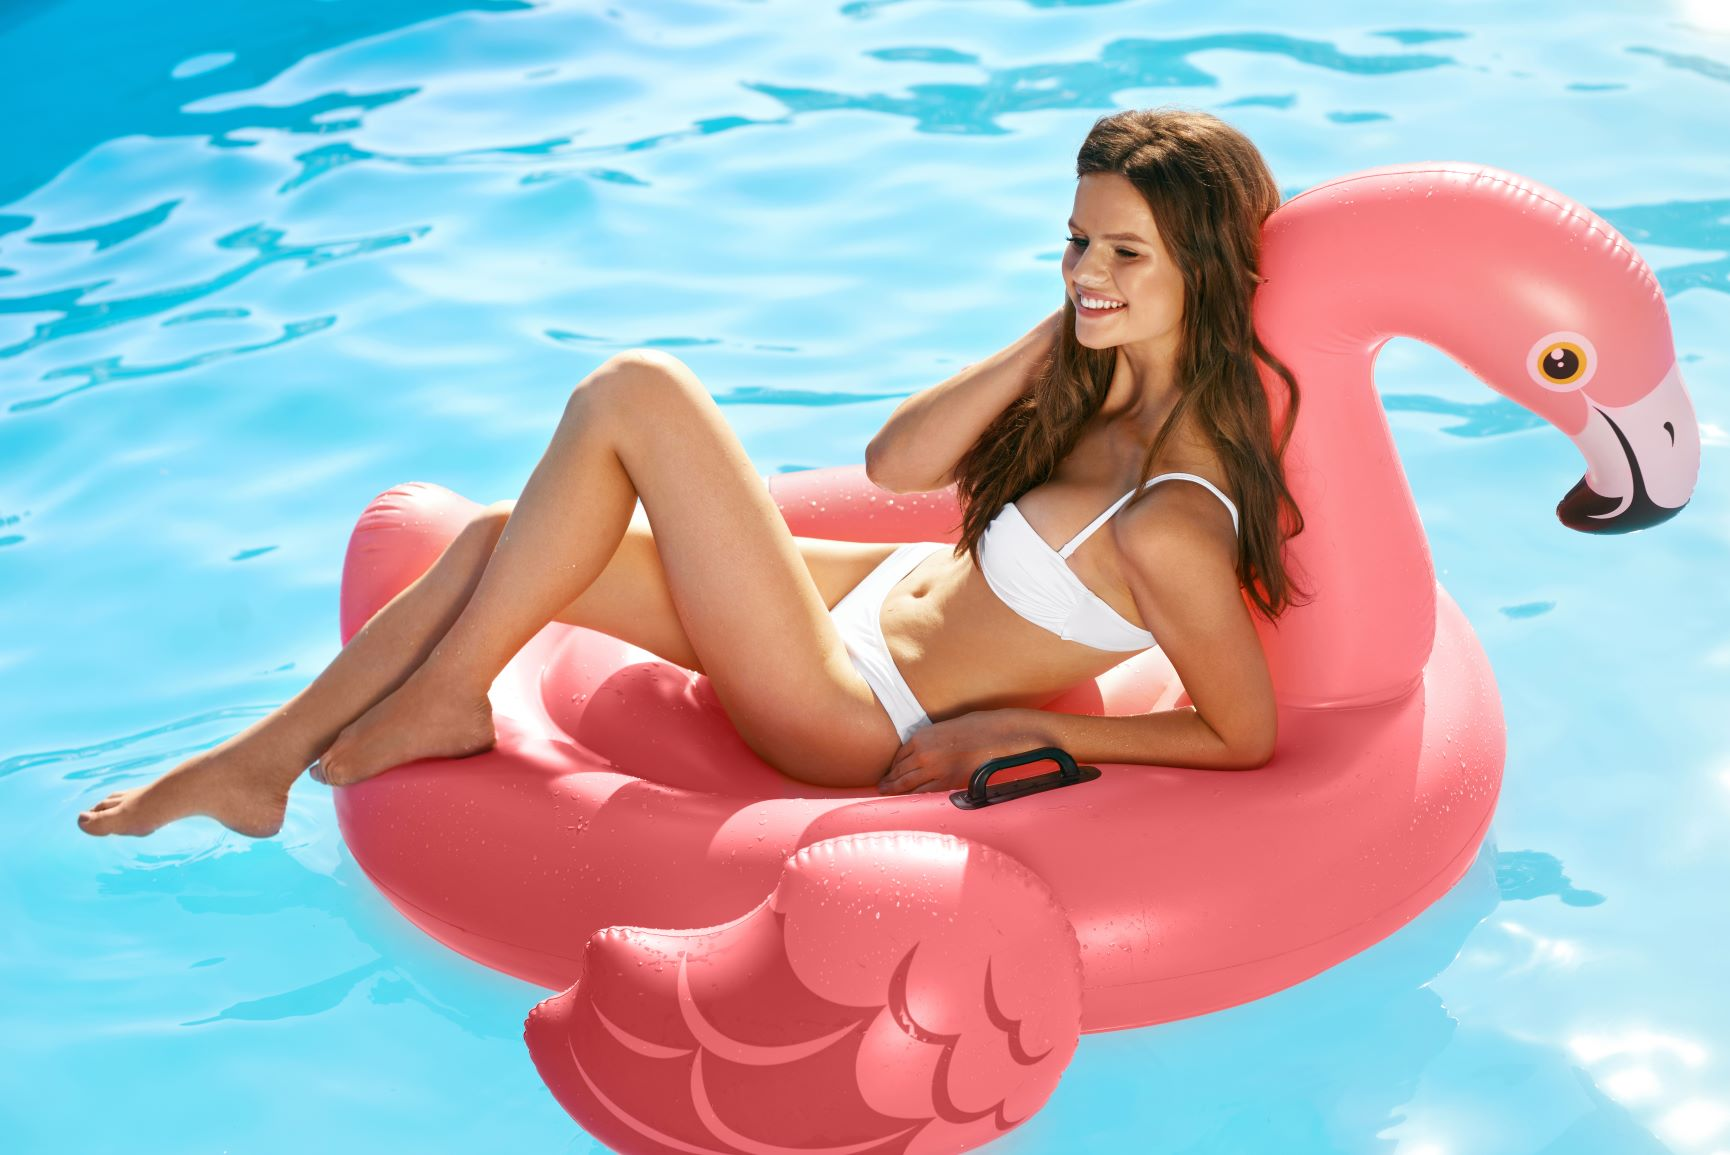 woman on flamingo shaped float in swimming pool - christiana de apartments